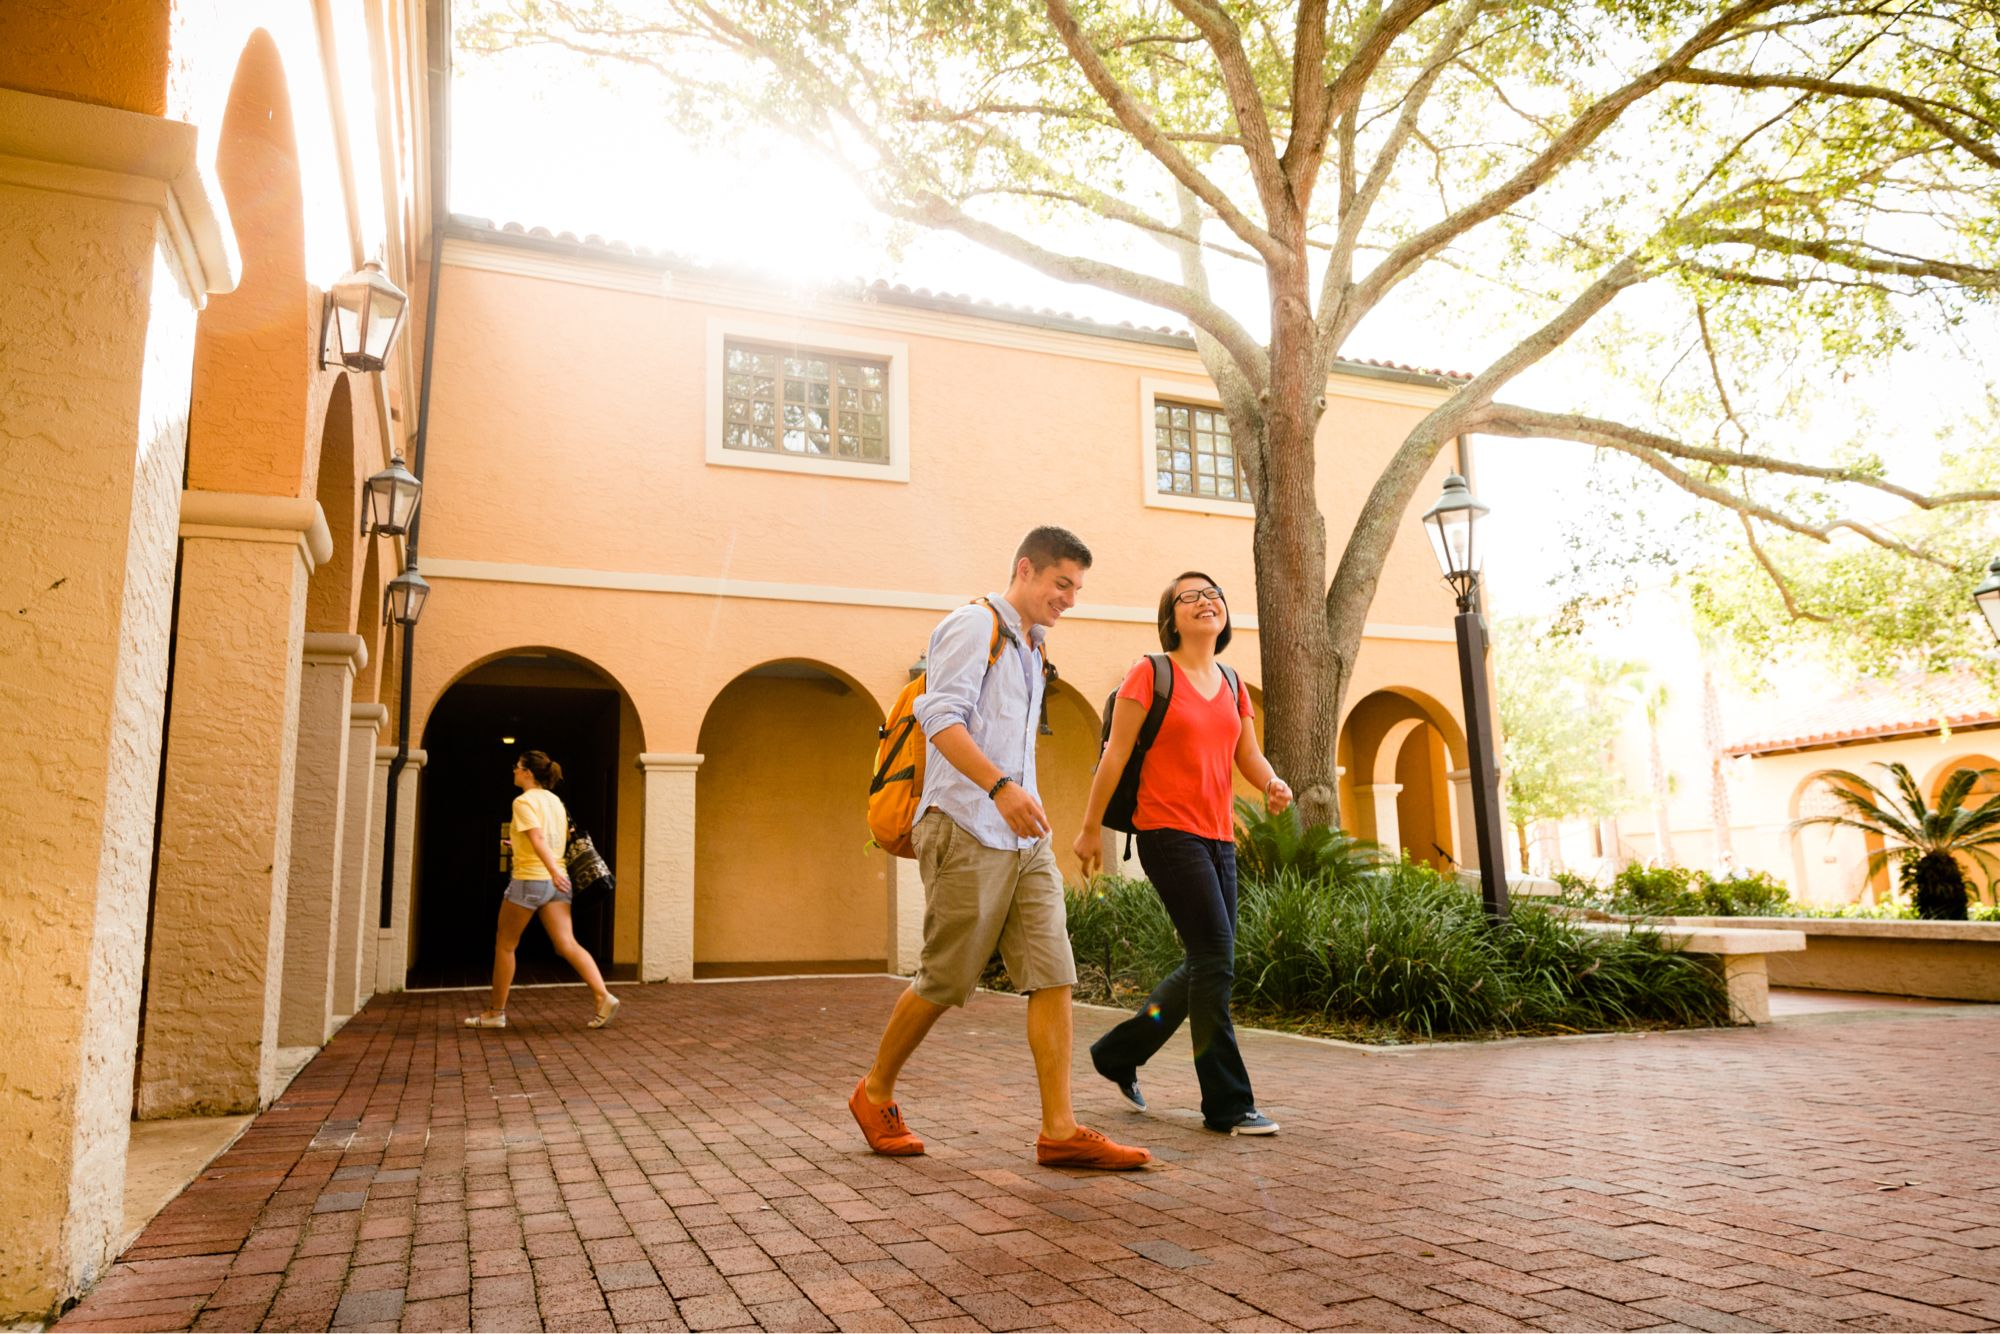 A couple of liberal arts college students walking across campus smiling.